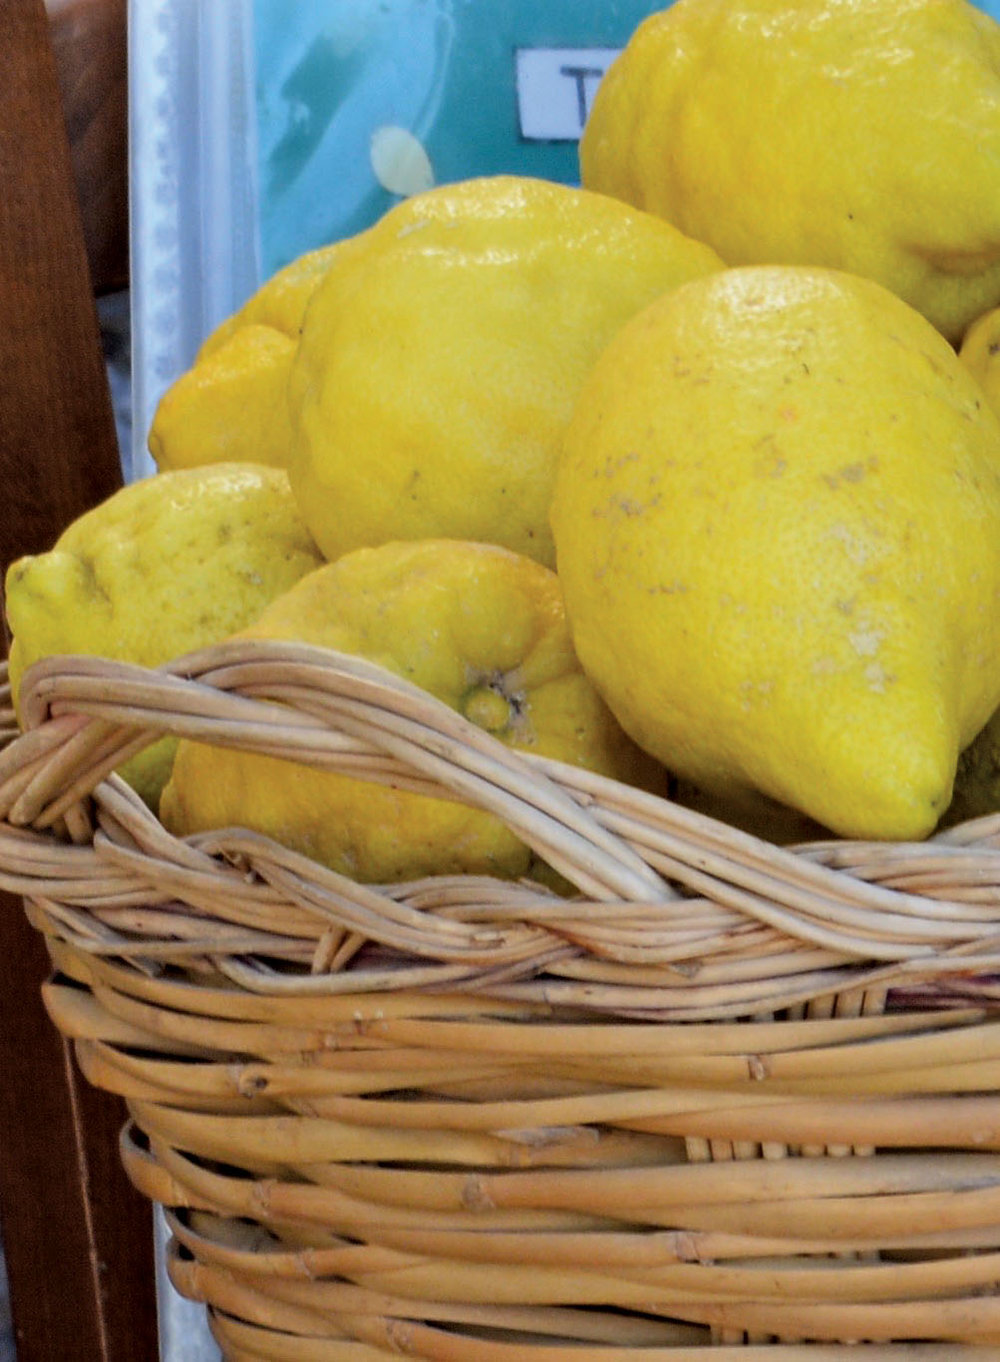 Local lemons for fresh lemonade in Nocello.